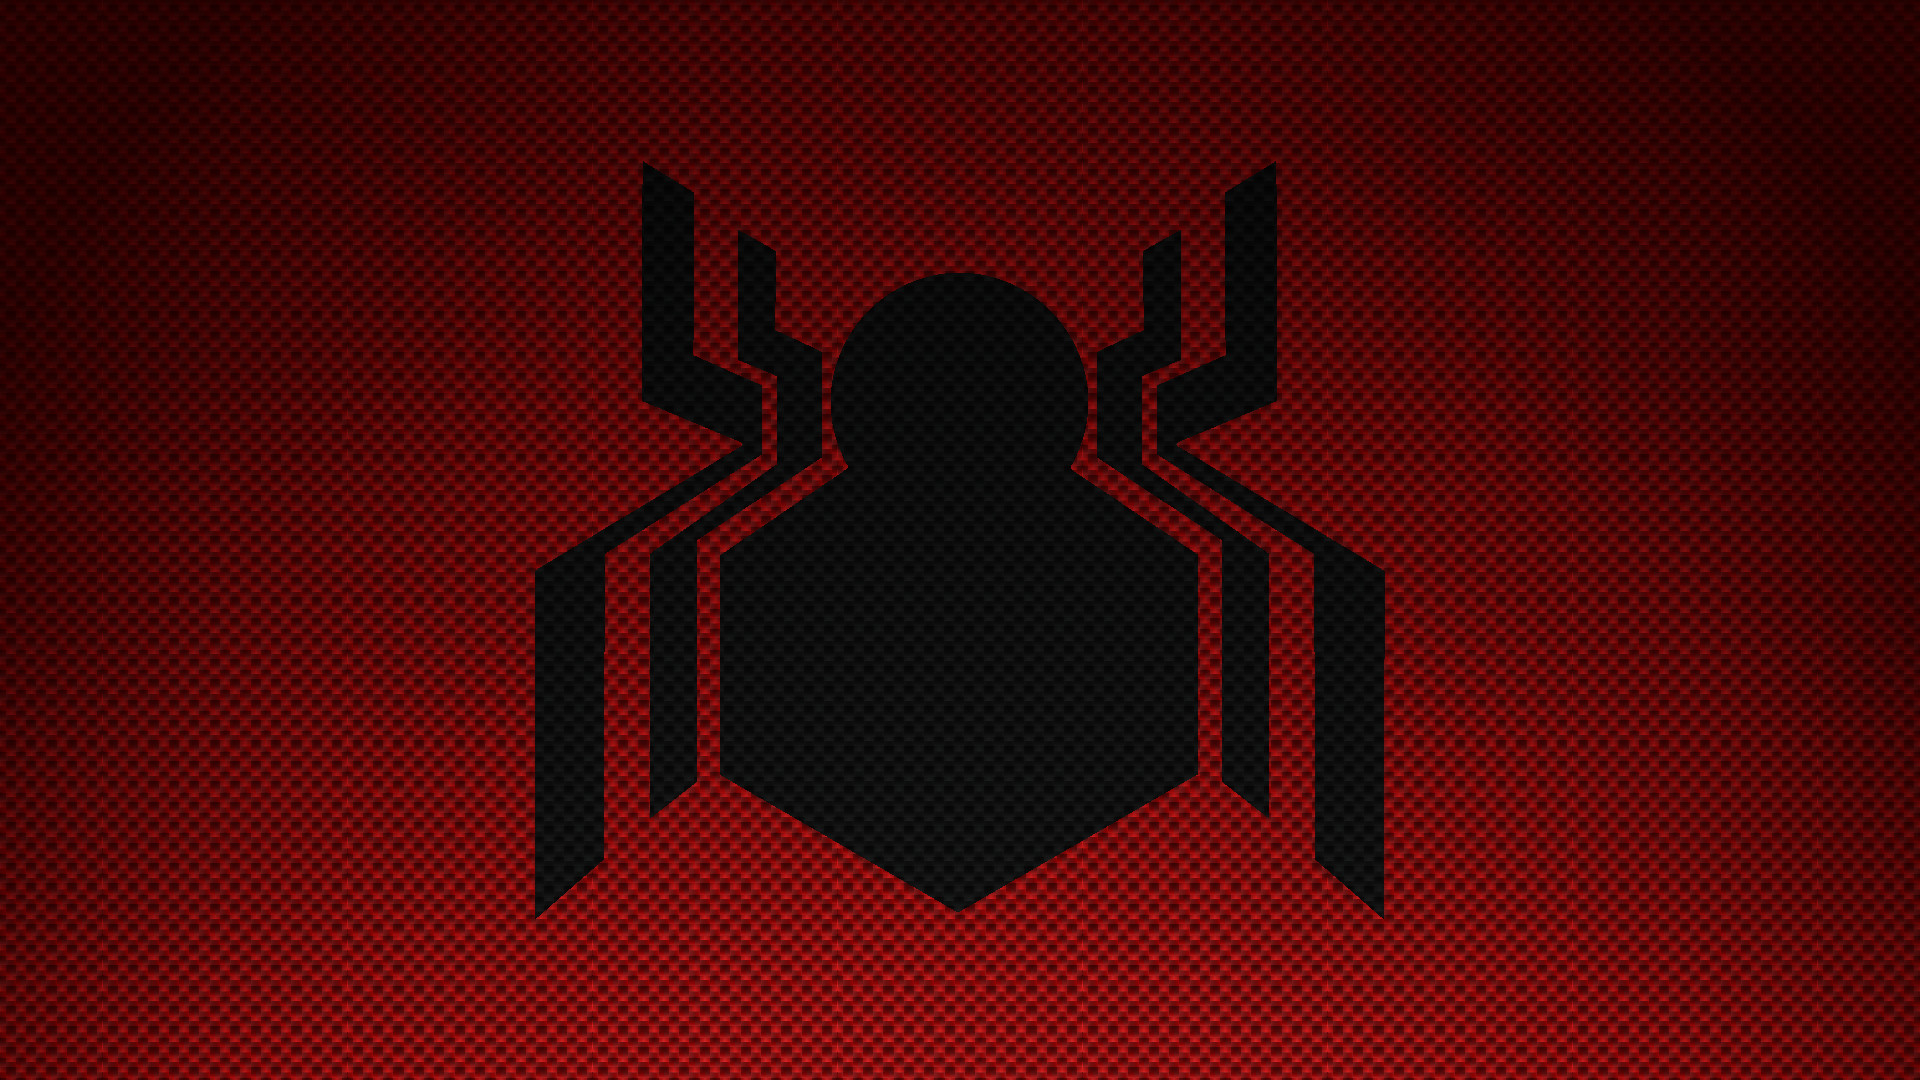 Res: 1920x1080, spiderman symbol wallpaper #521730